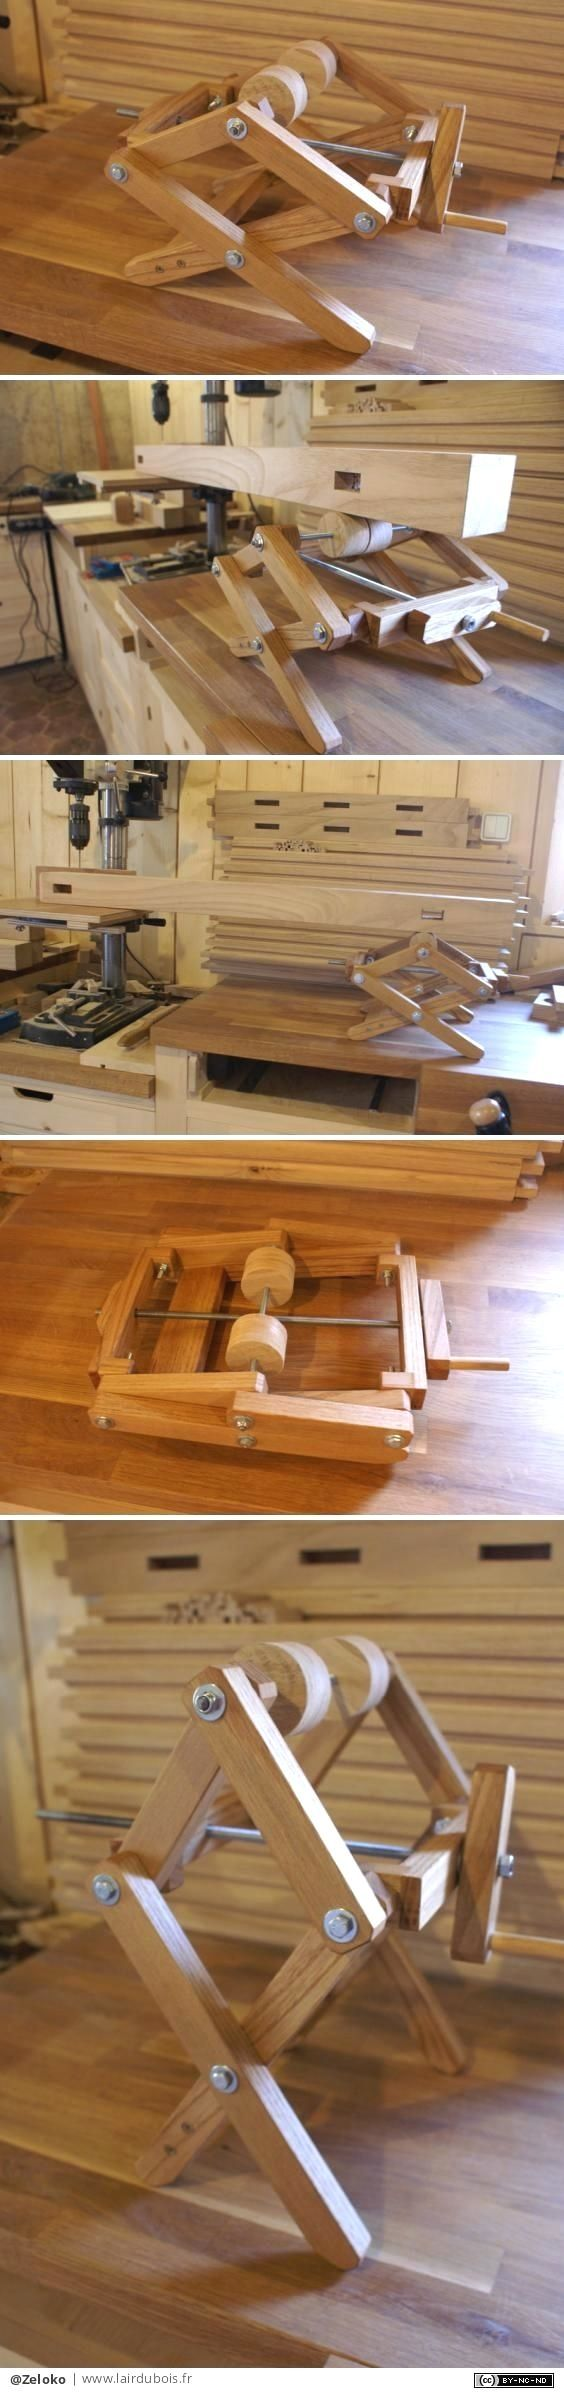 cool woodshop project ideas #woodworkplans #WoodWorking